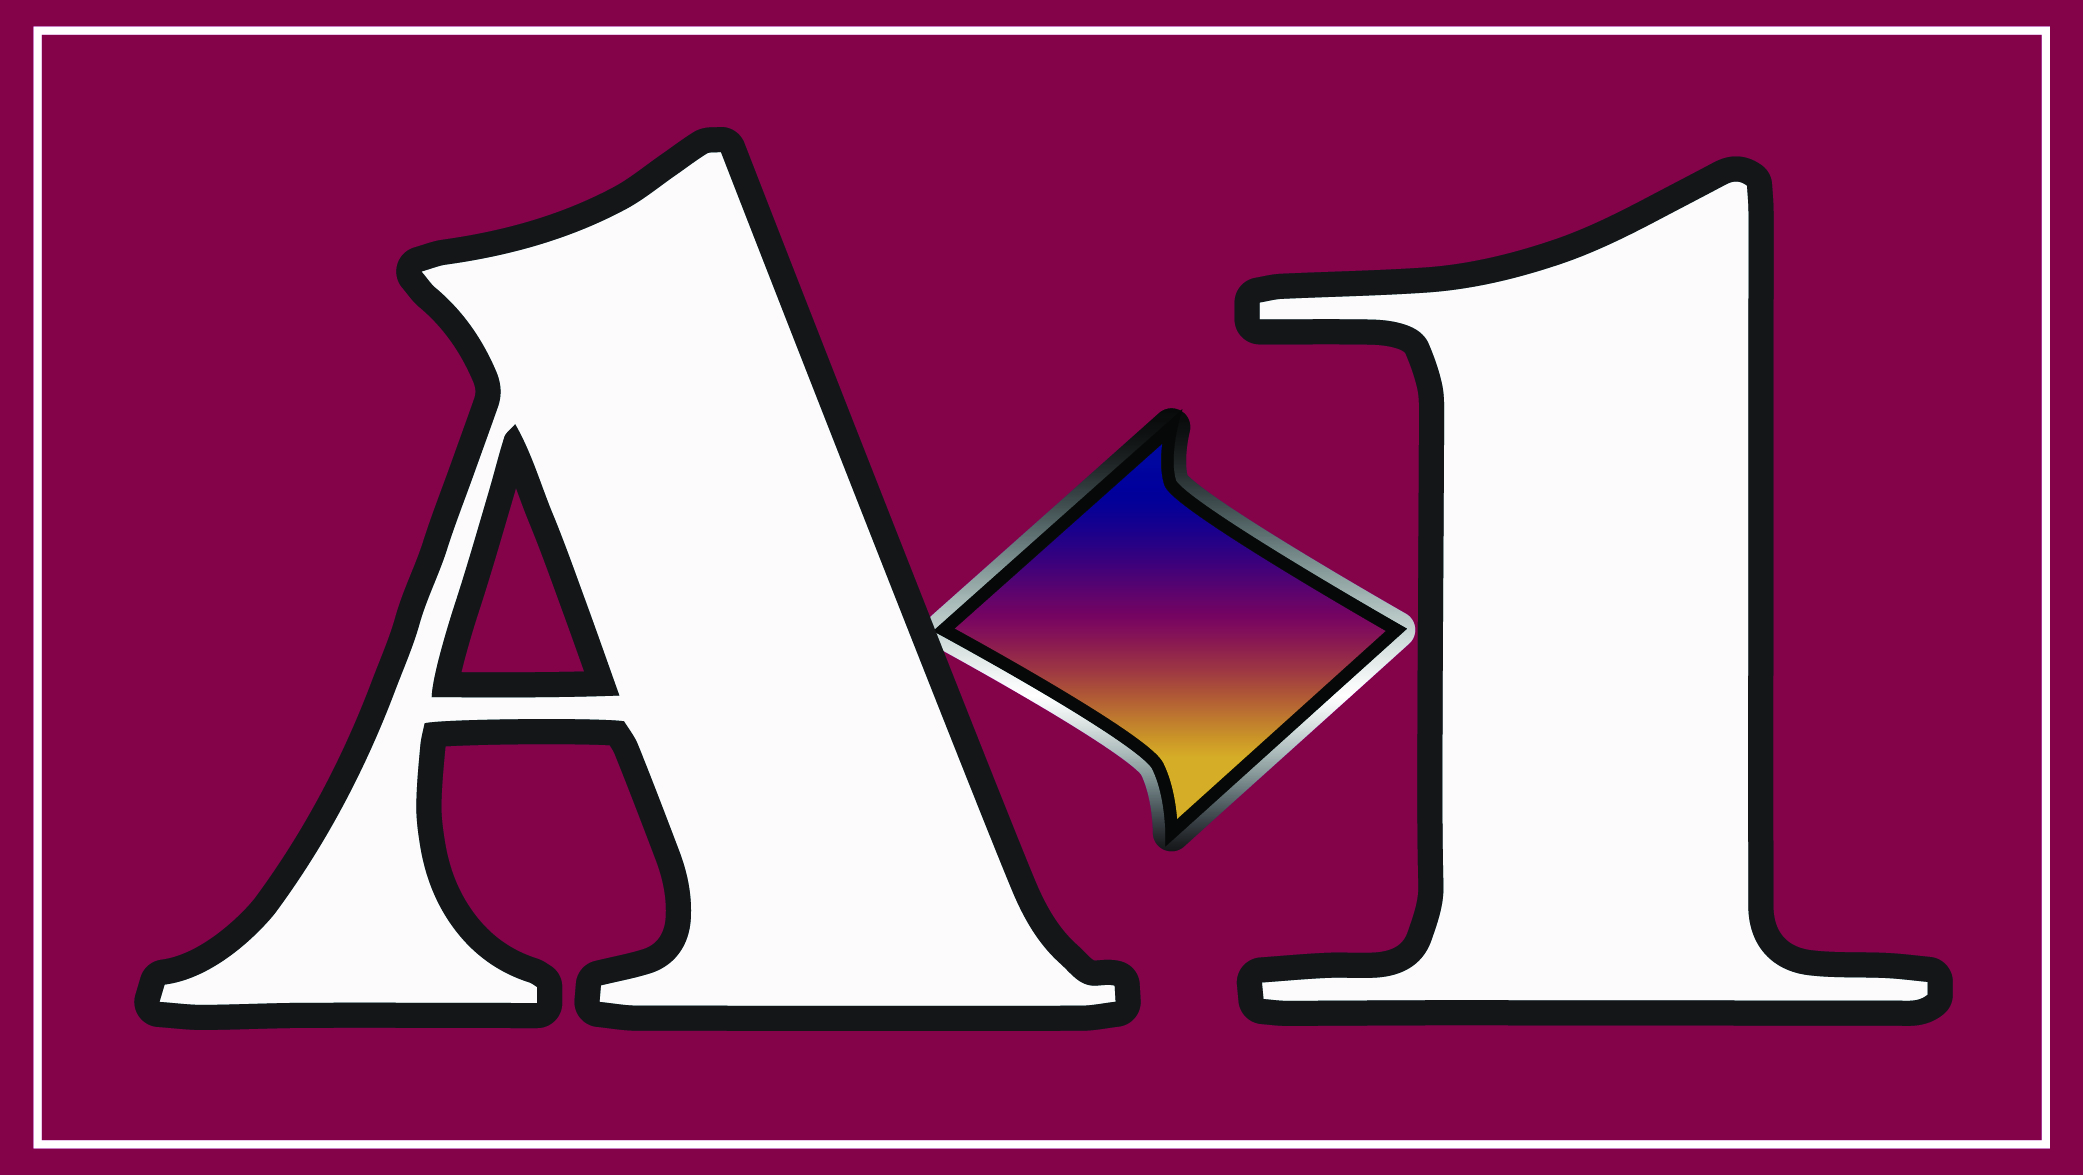 A-1 Loans & Investments